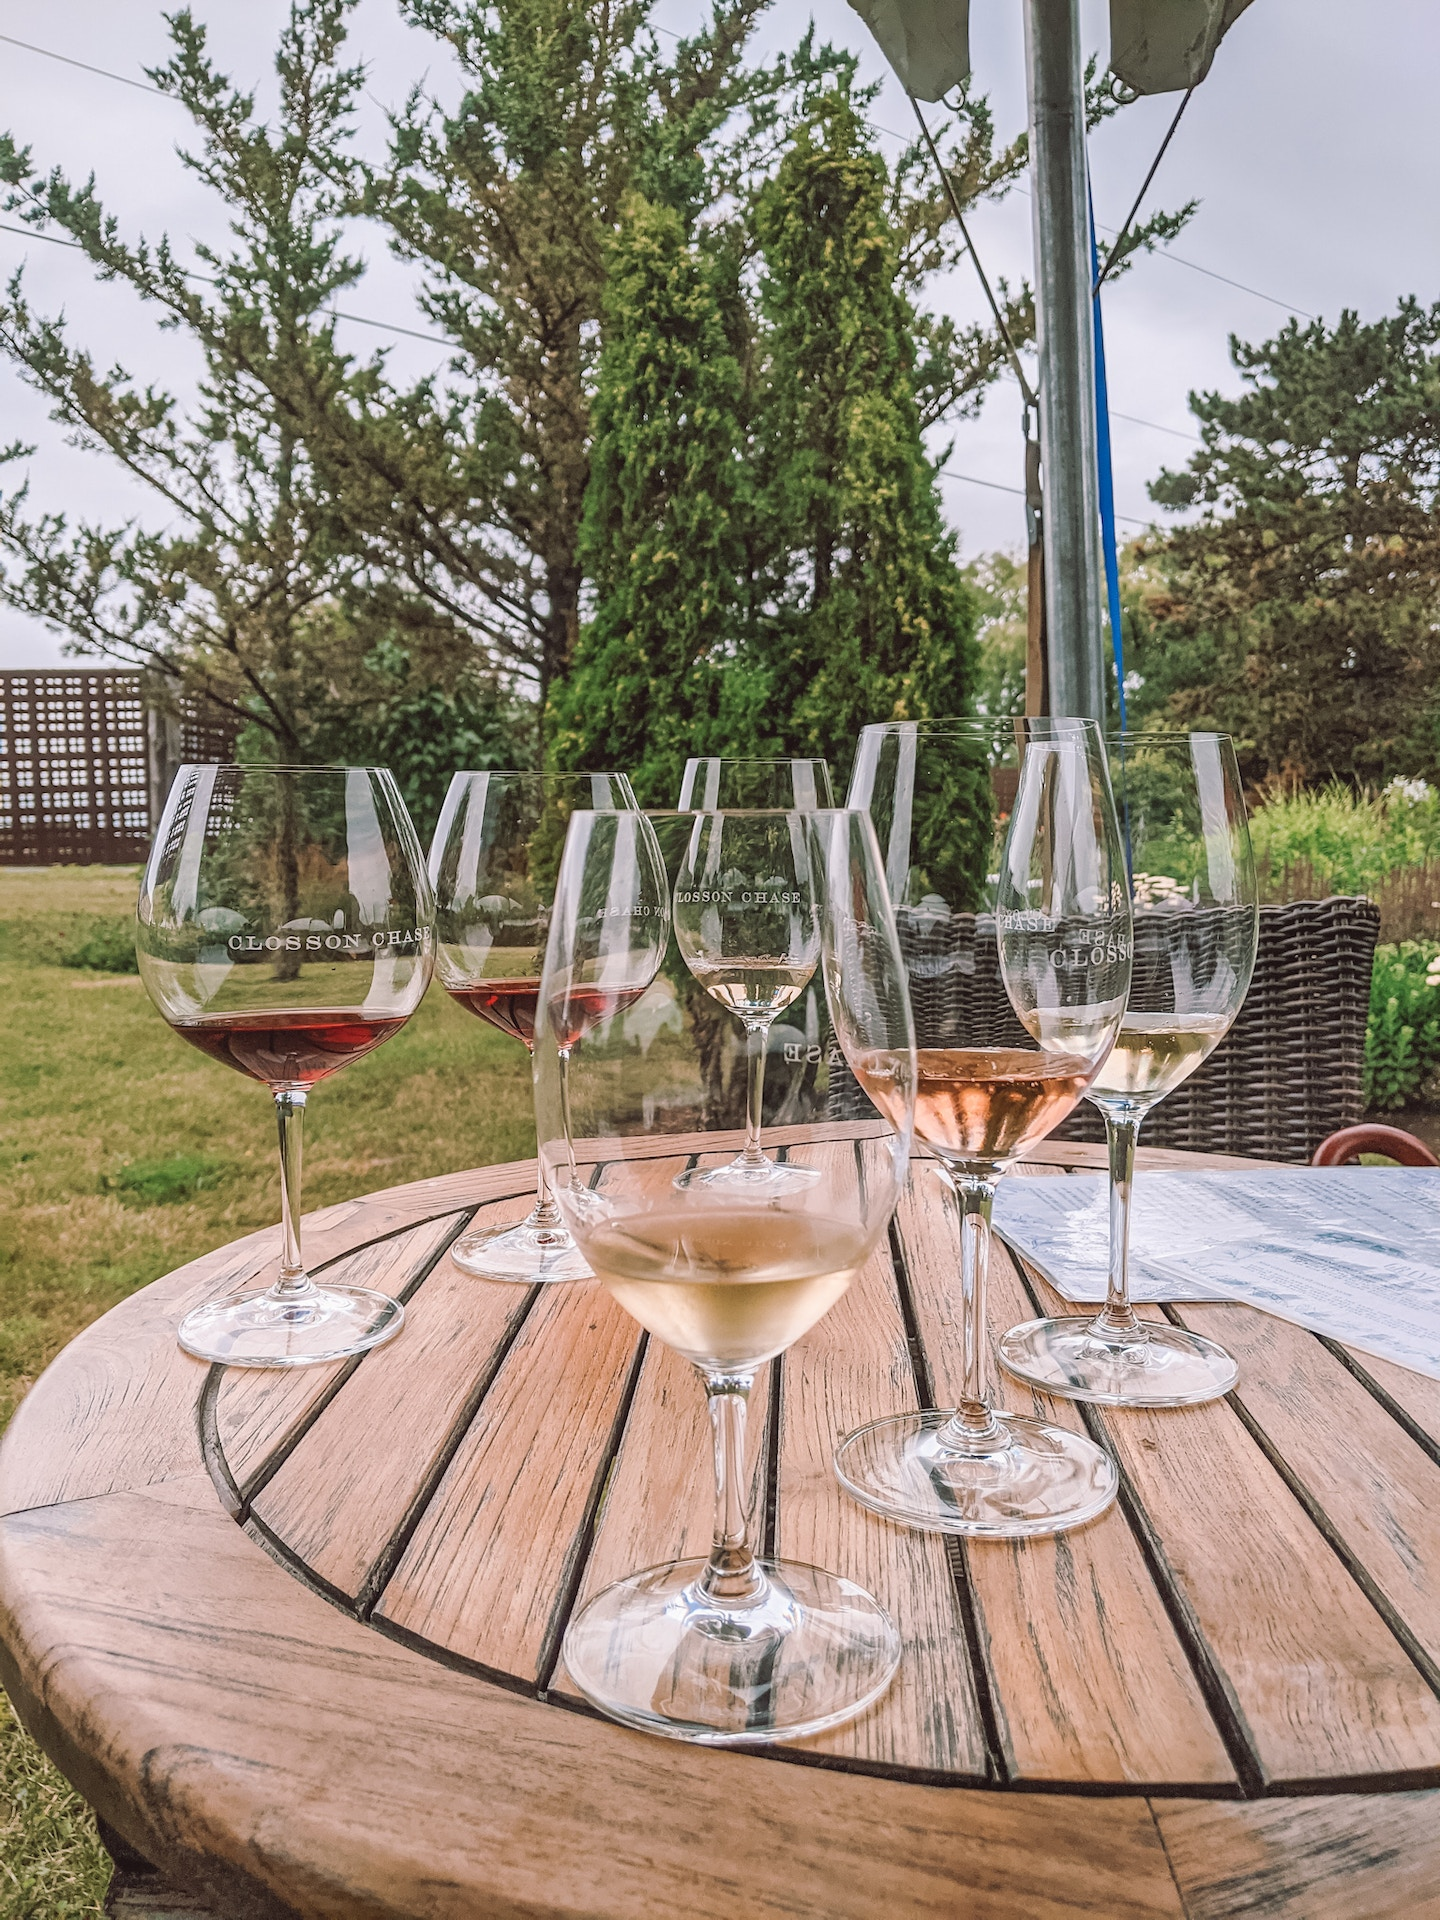 At Closson Chasse Vineyards in PEC, a tasting flight costs $15 for three selections of wine.